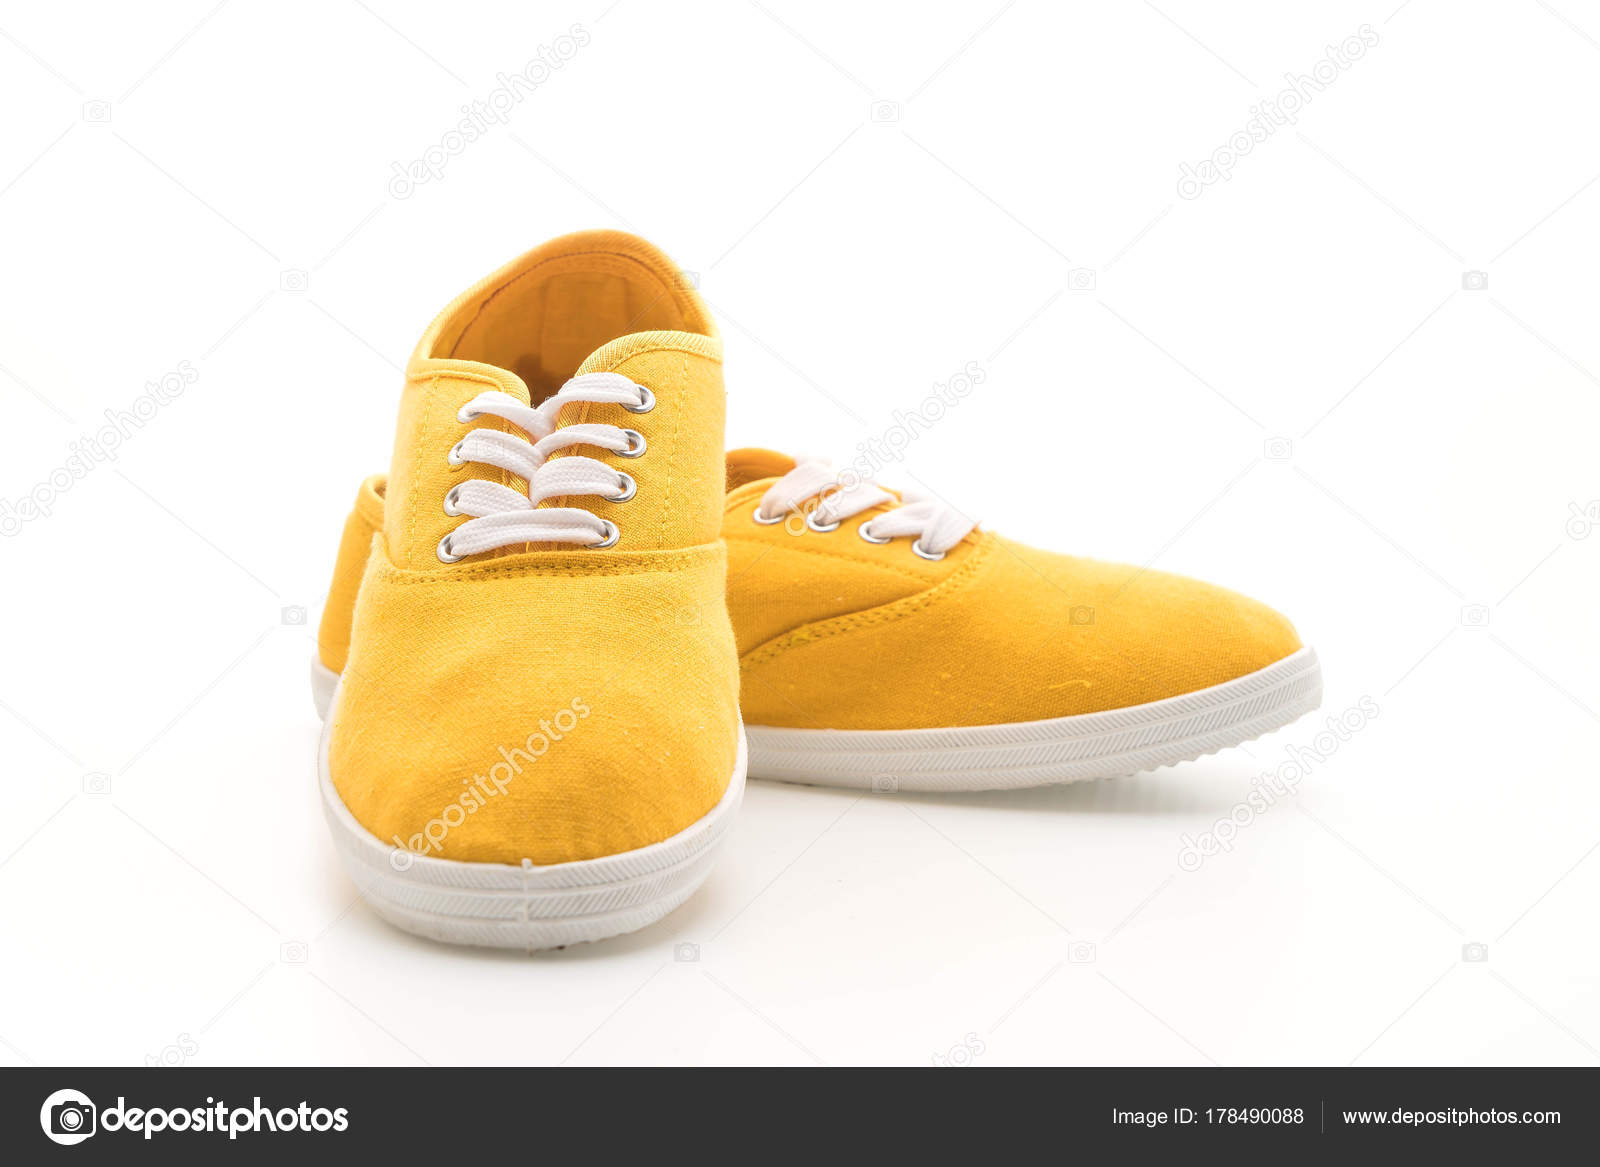 cc4b86d19f1799 yellow sneakers on white background — Stock Photo © topntp  178490088